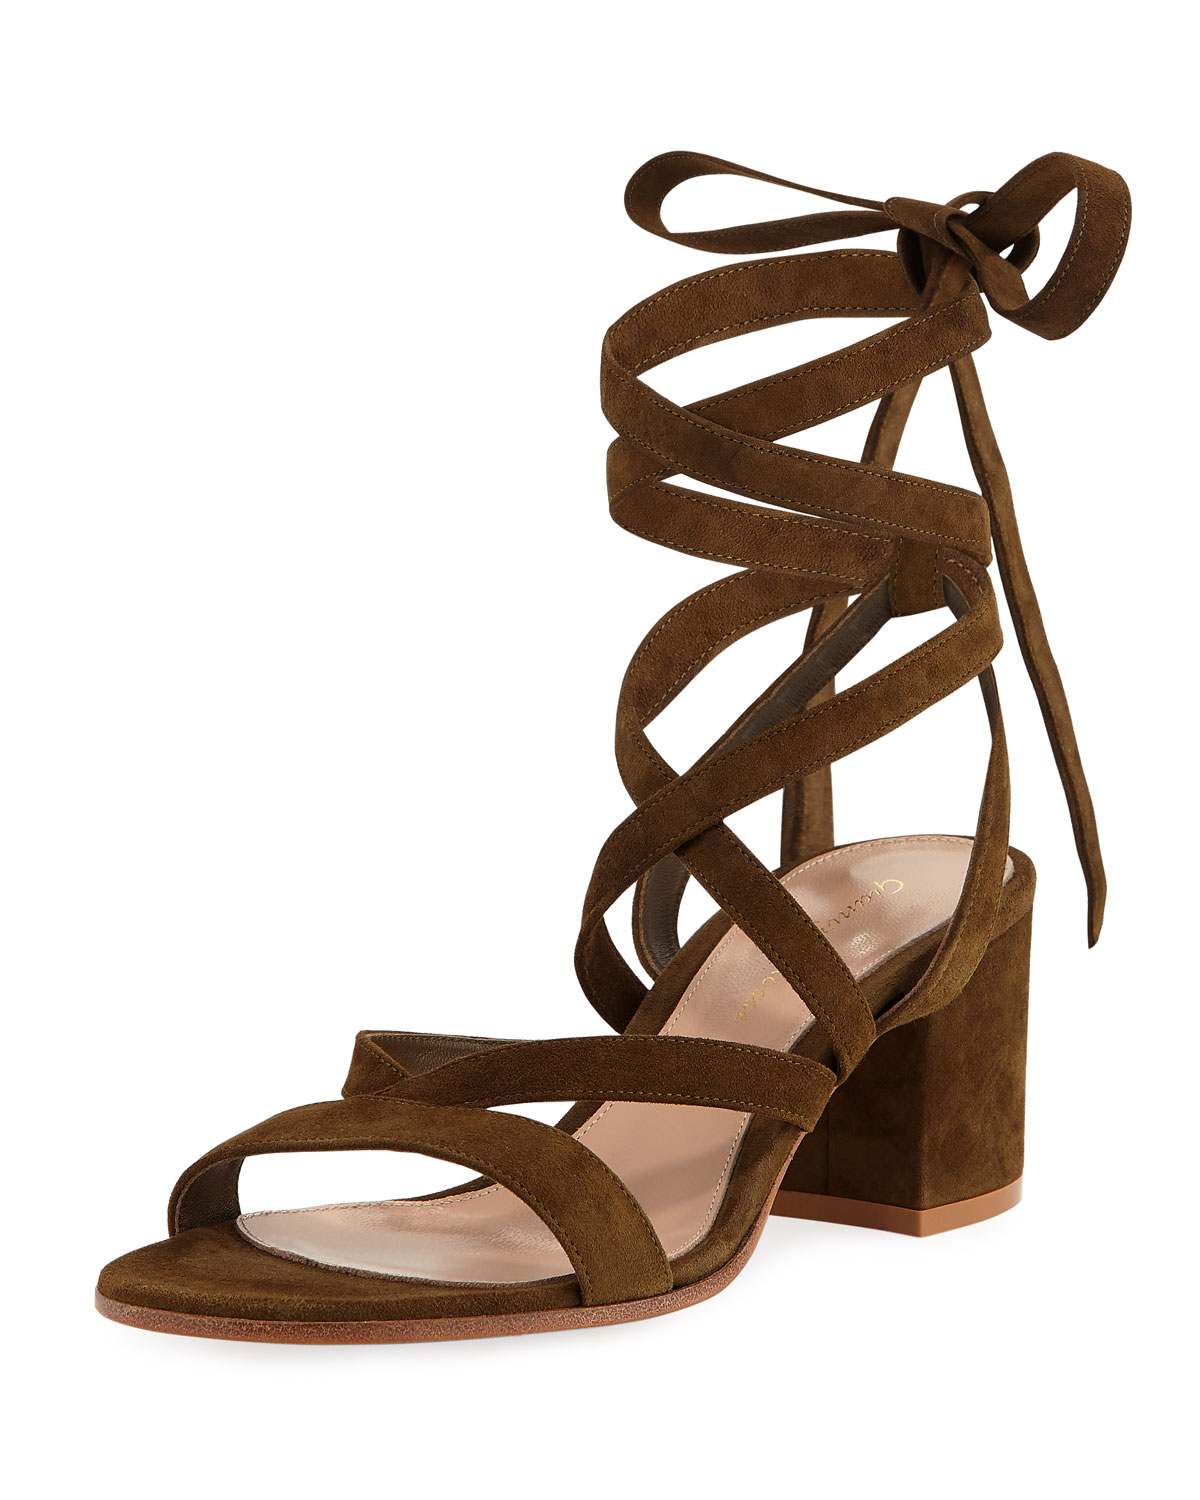 2d5dad05fc6 Gianvito Rossi Janis Low Suede Lace-Up Sandal